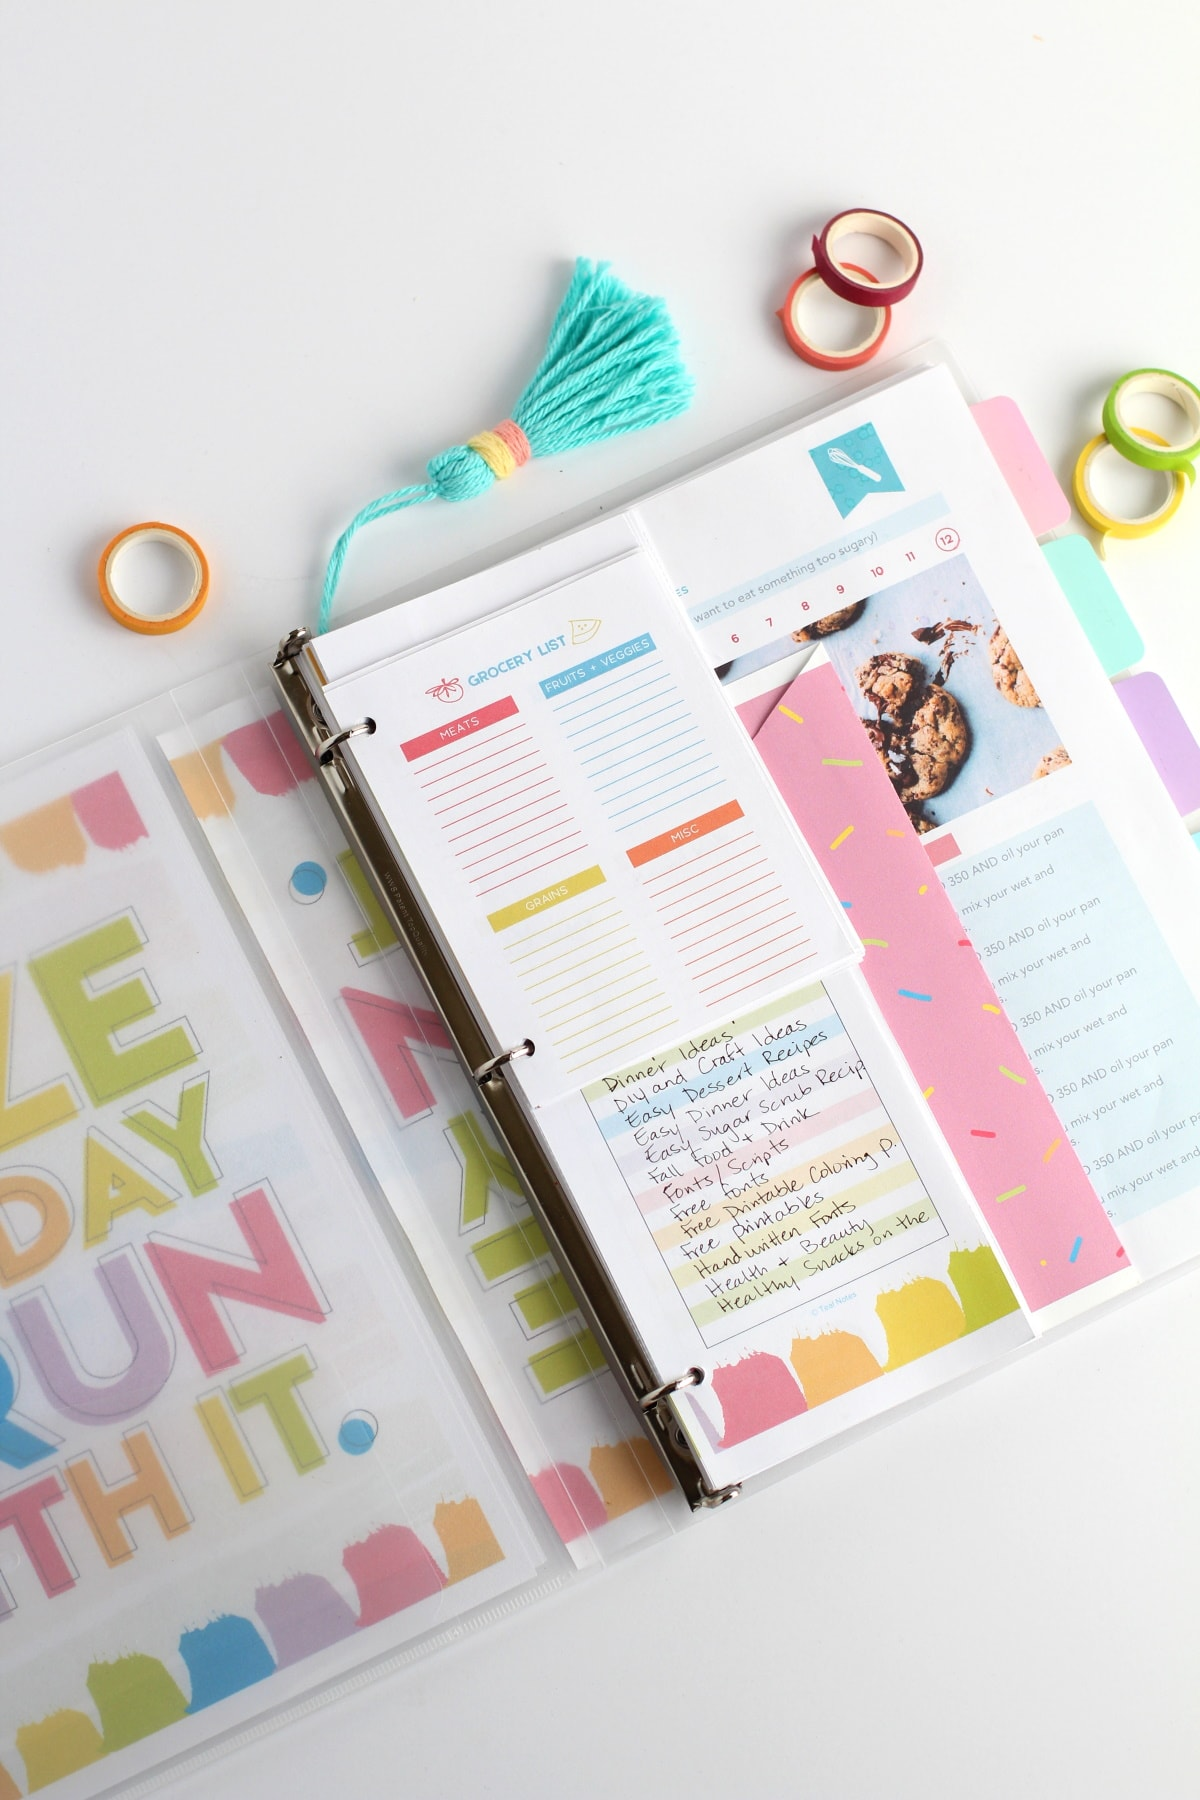 DIY planner, how to make a printable planner with planner templates and ideas